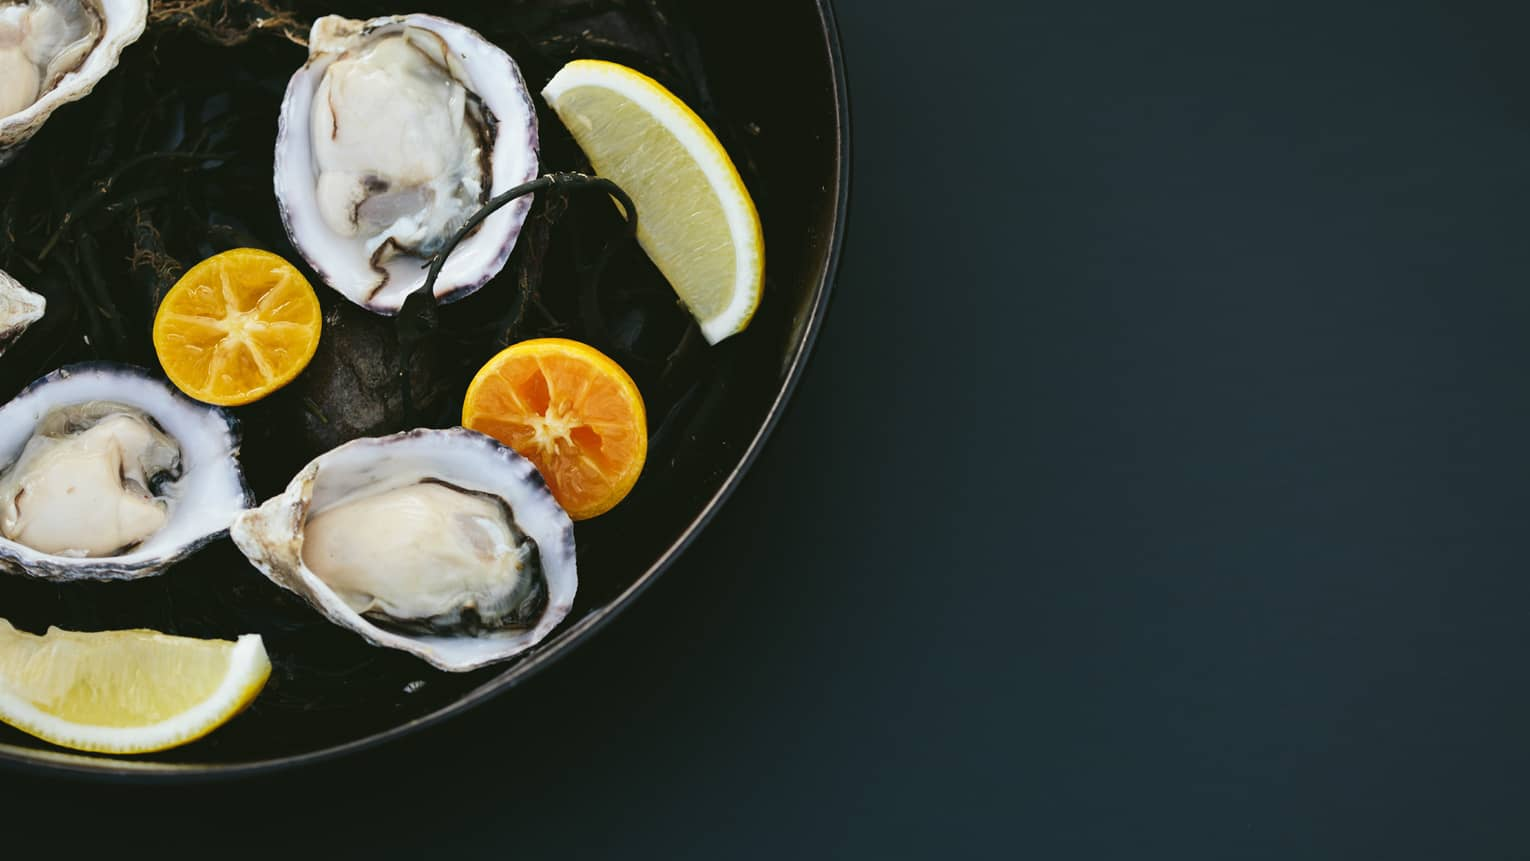 Oyster dish with citrus